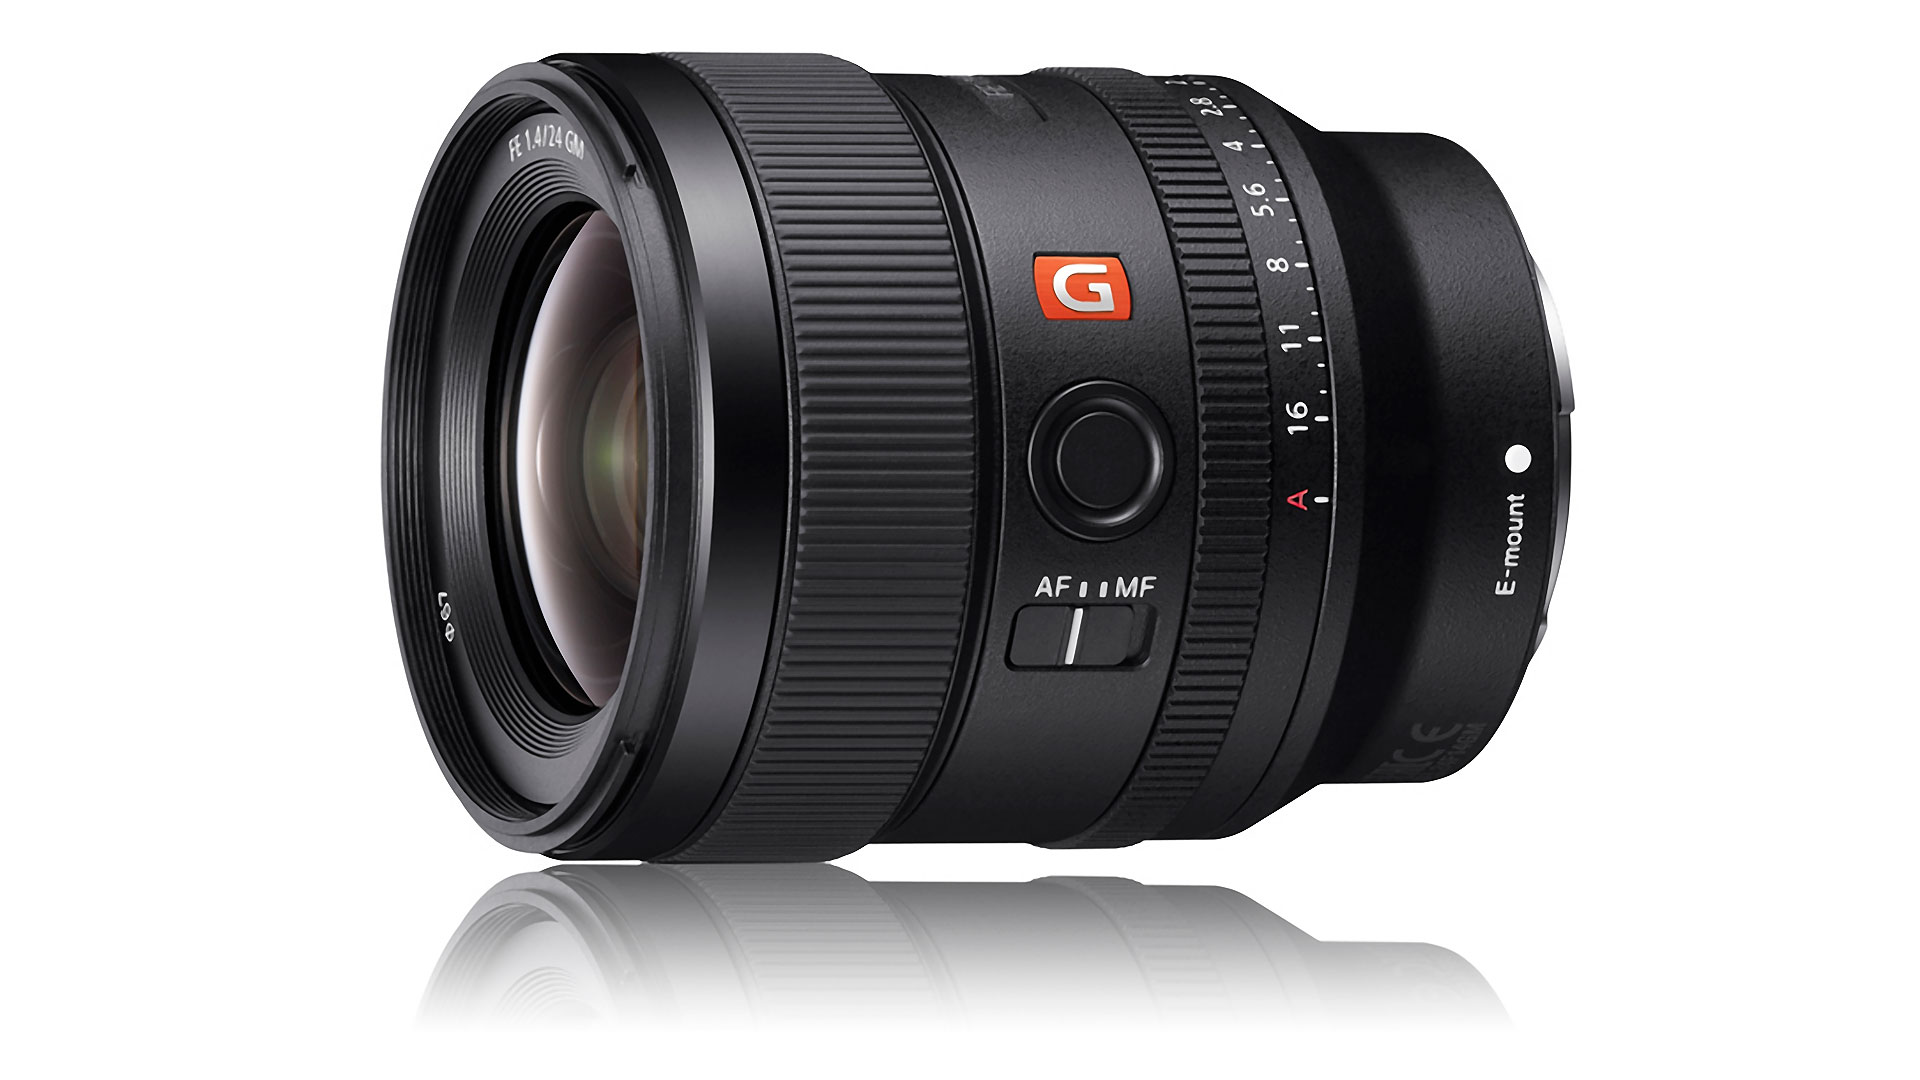 Sony boosts its full frame mirrorless lens range with the FE 24mm f/1.4 G Master